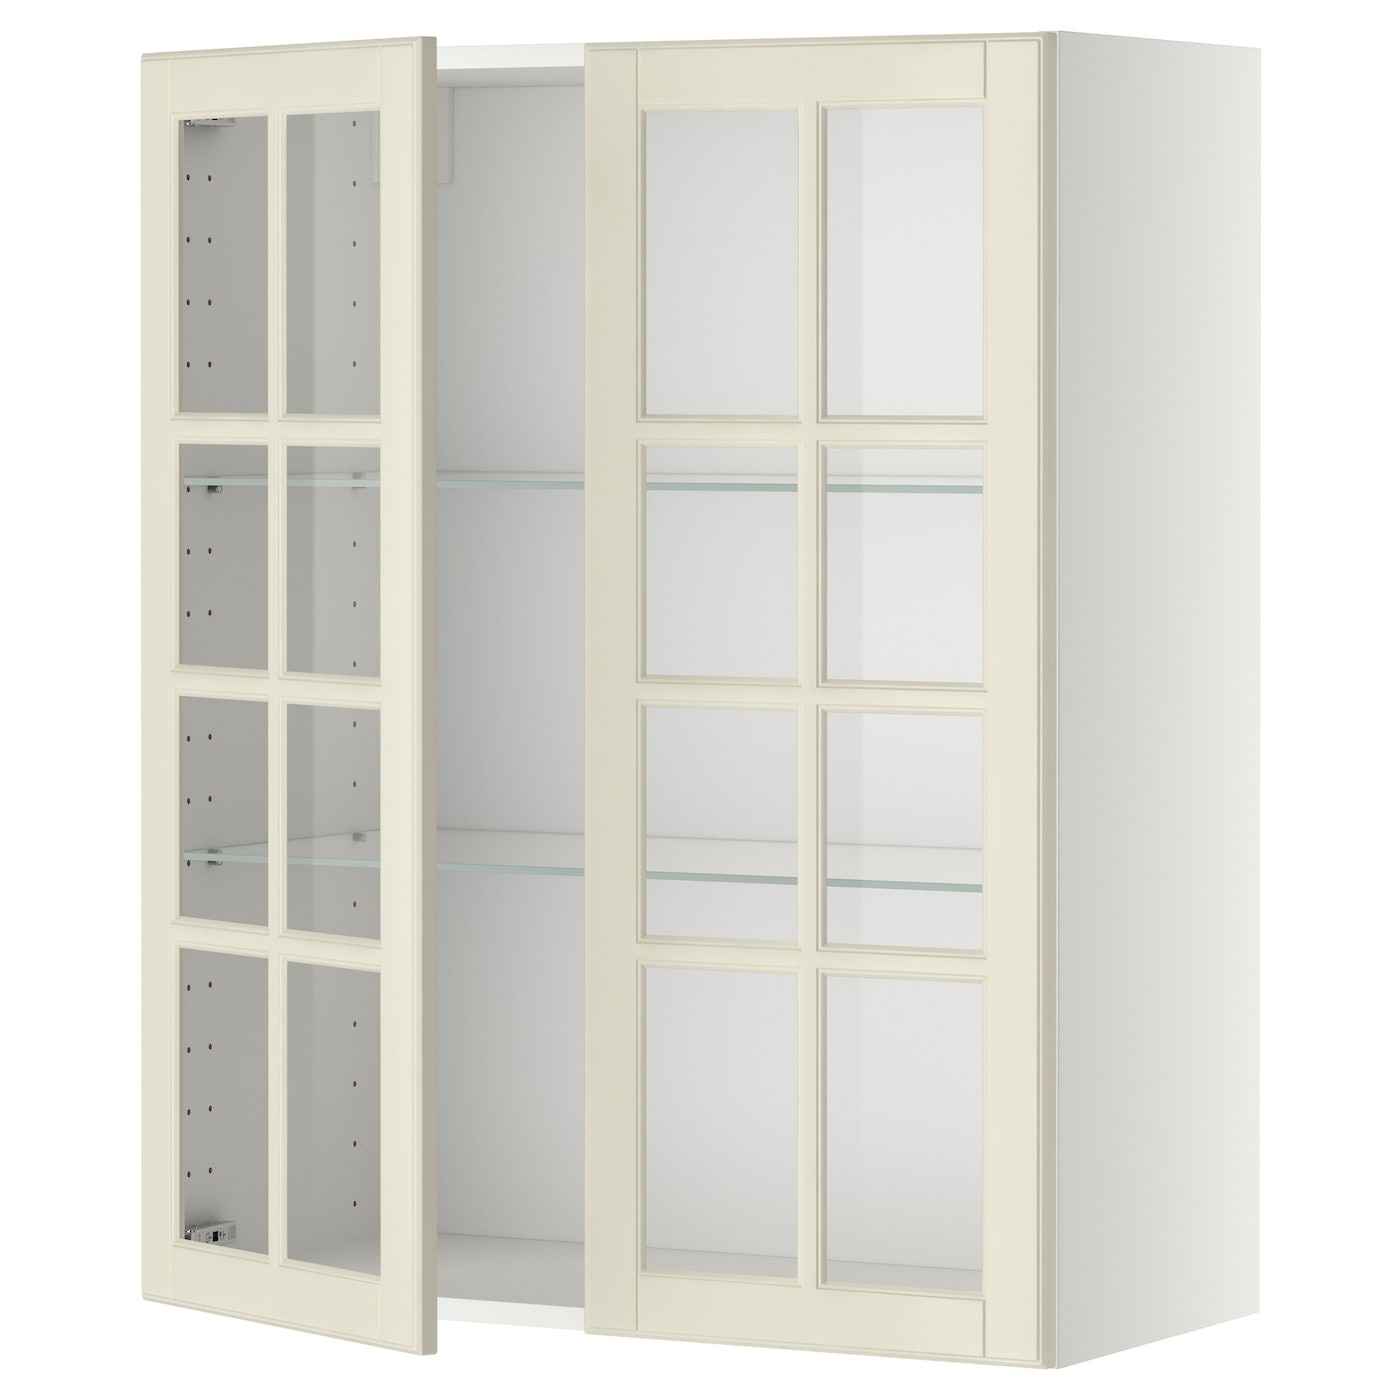 IKEA METOD wall cabinet w shelves/2 glass drs Sturdy frame construction, 18 mm thick.